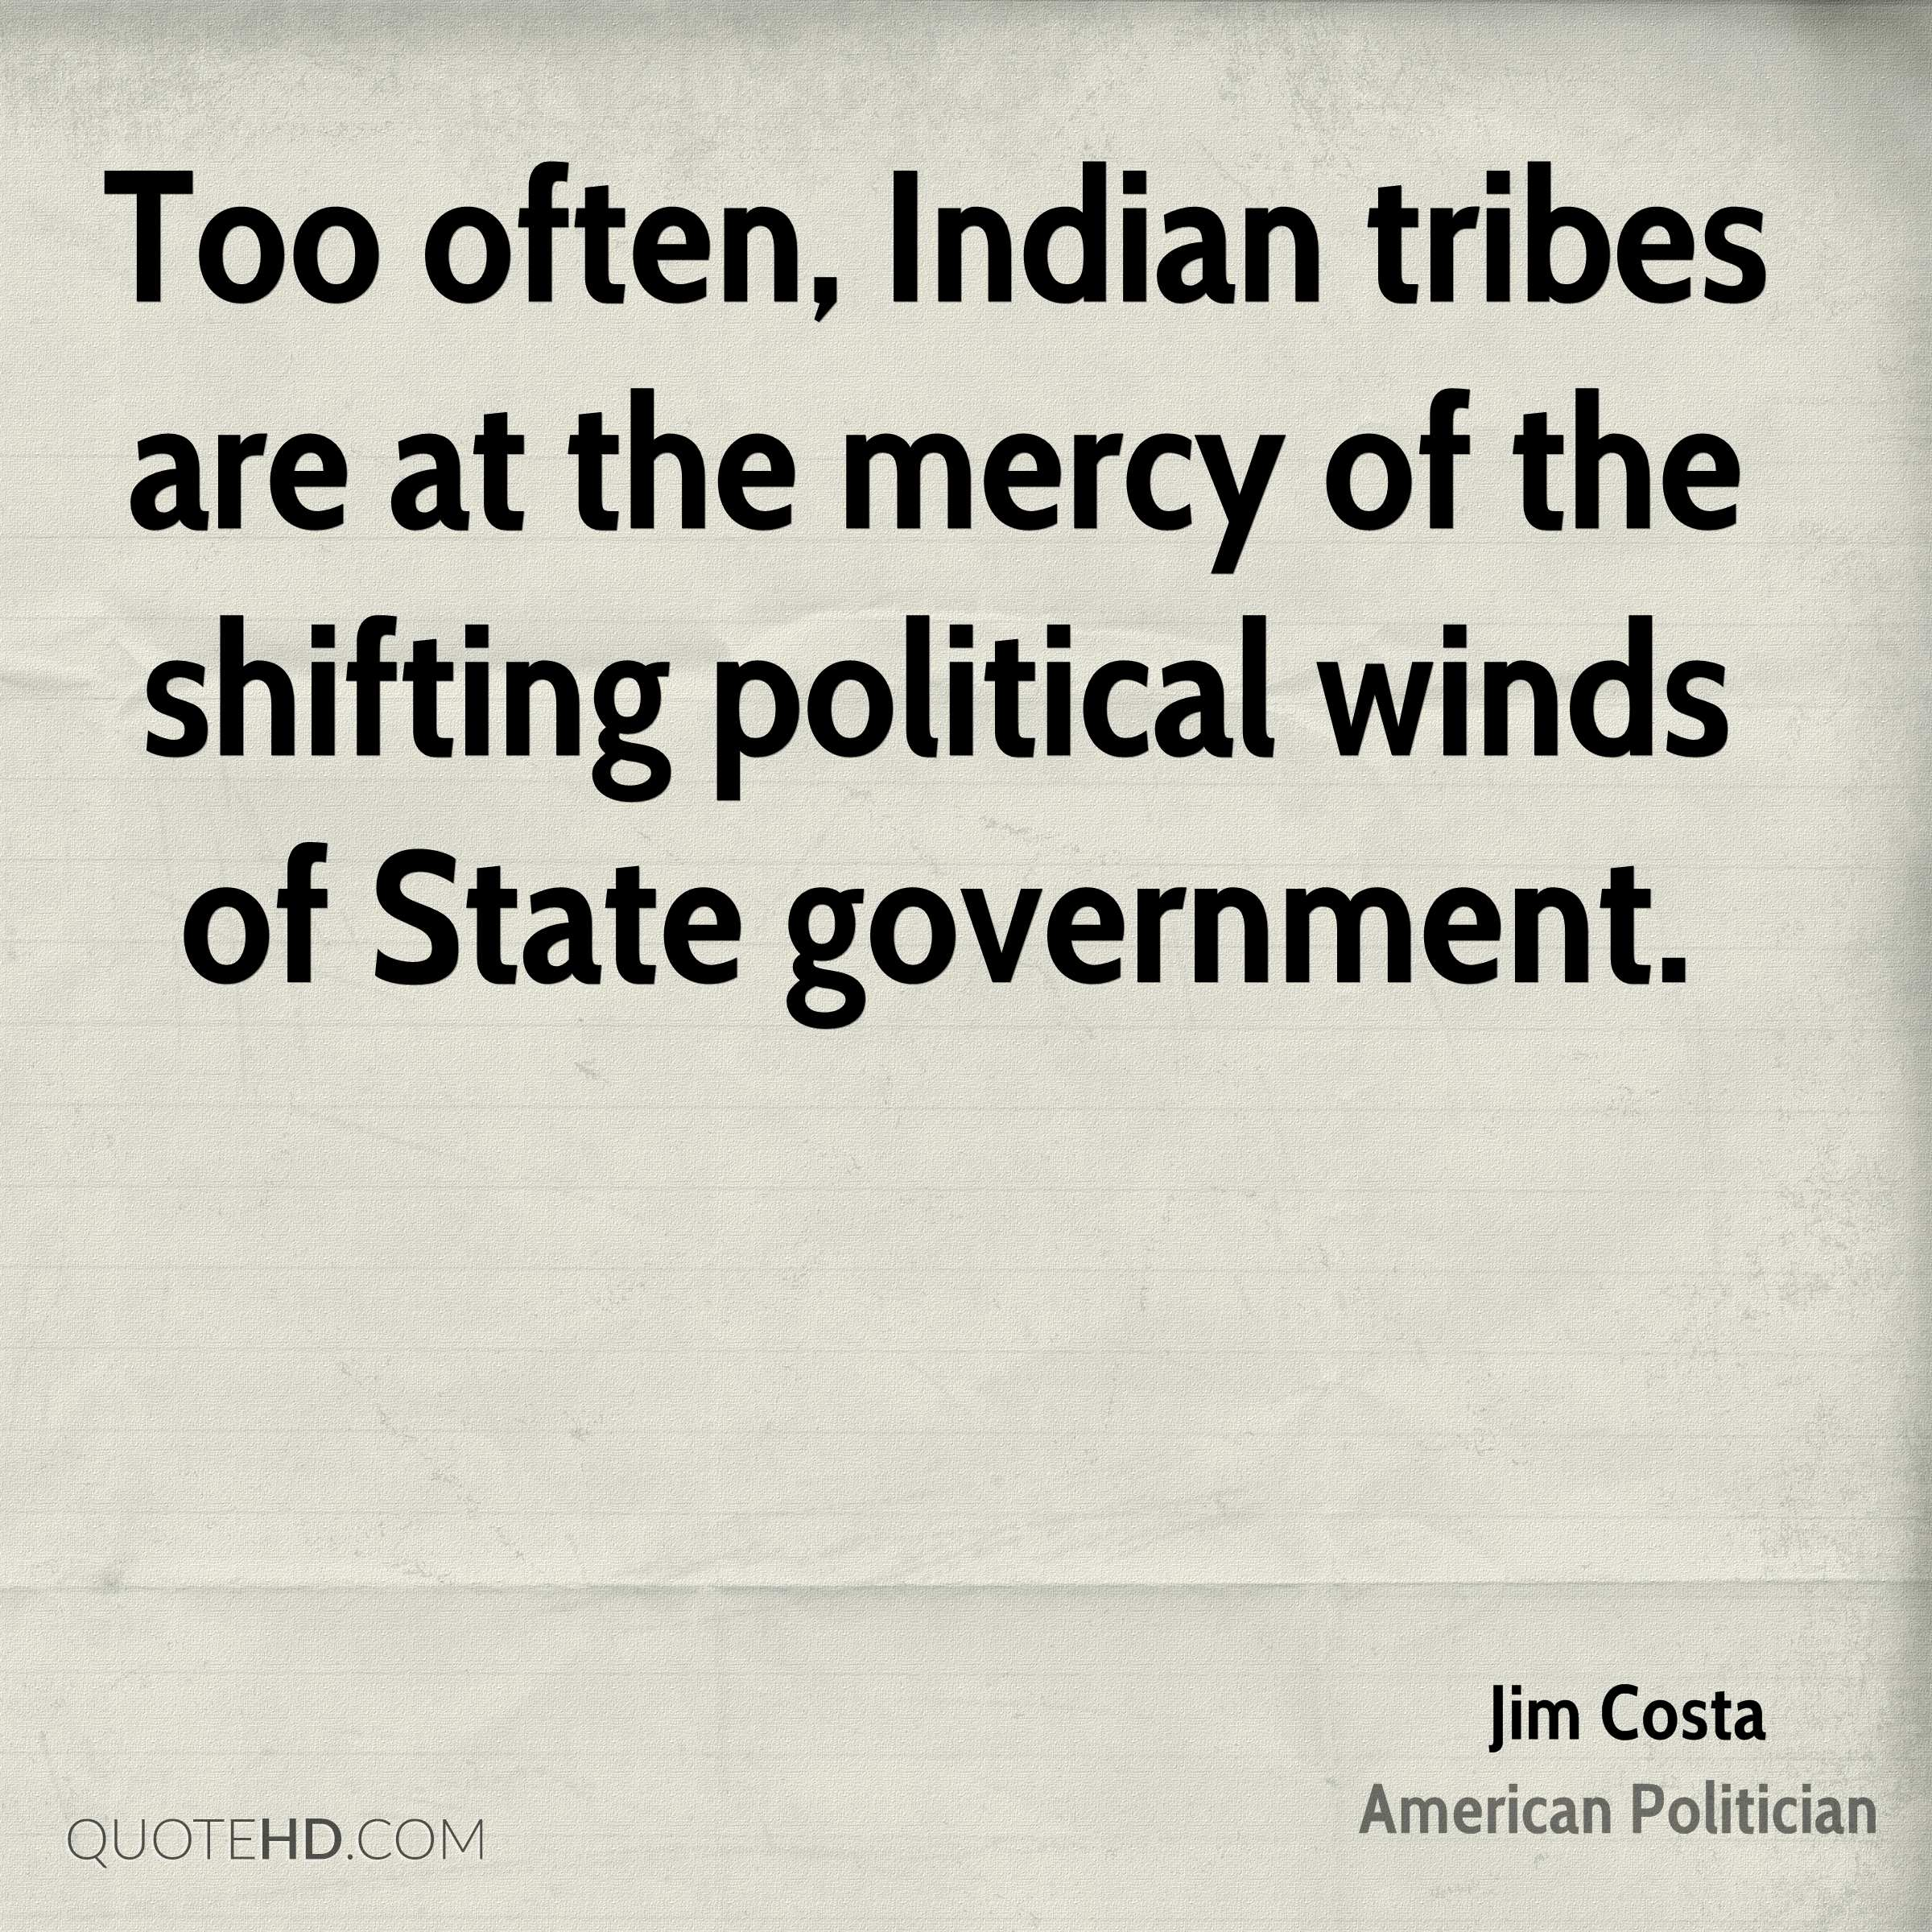 Too often, Indian tribes are at the mercy of the shifting political winds of State government.